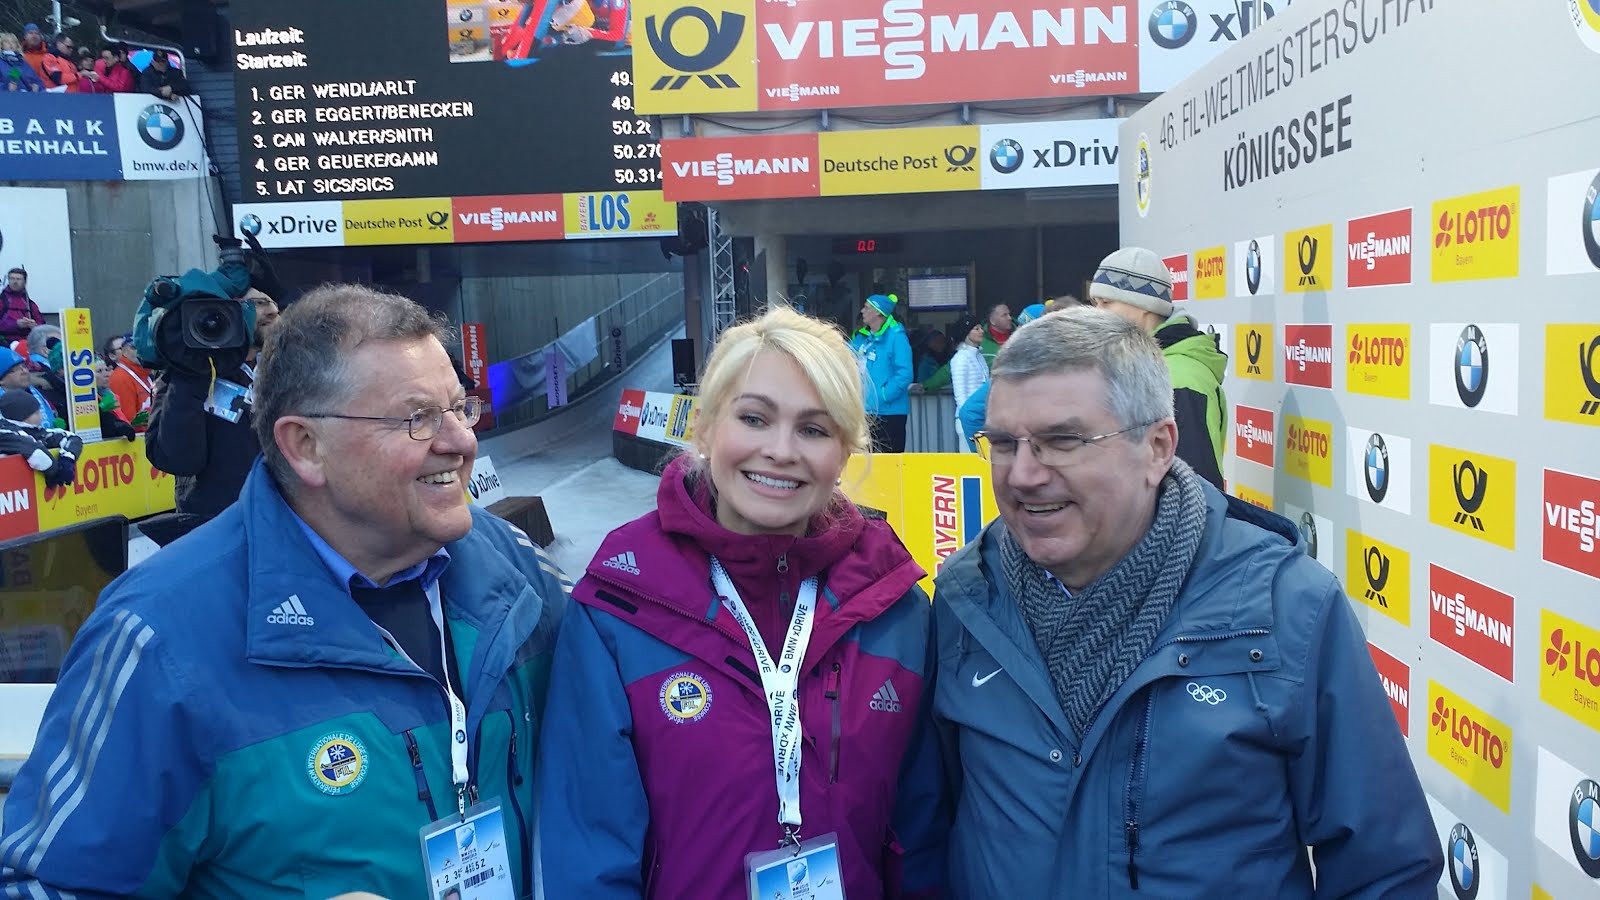 Natalia Gart, centre, head of the Russian Luge Federation, pictured with IOC President Thomas Bach, revealed Tatyana Ivanova and Albert Demchenko could appeal to CAS after FIL refused to sanction them ©IOC